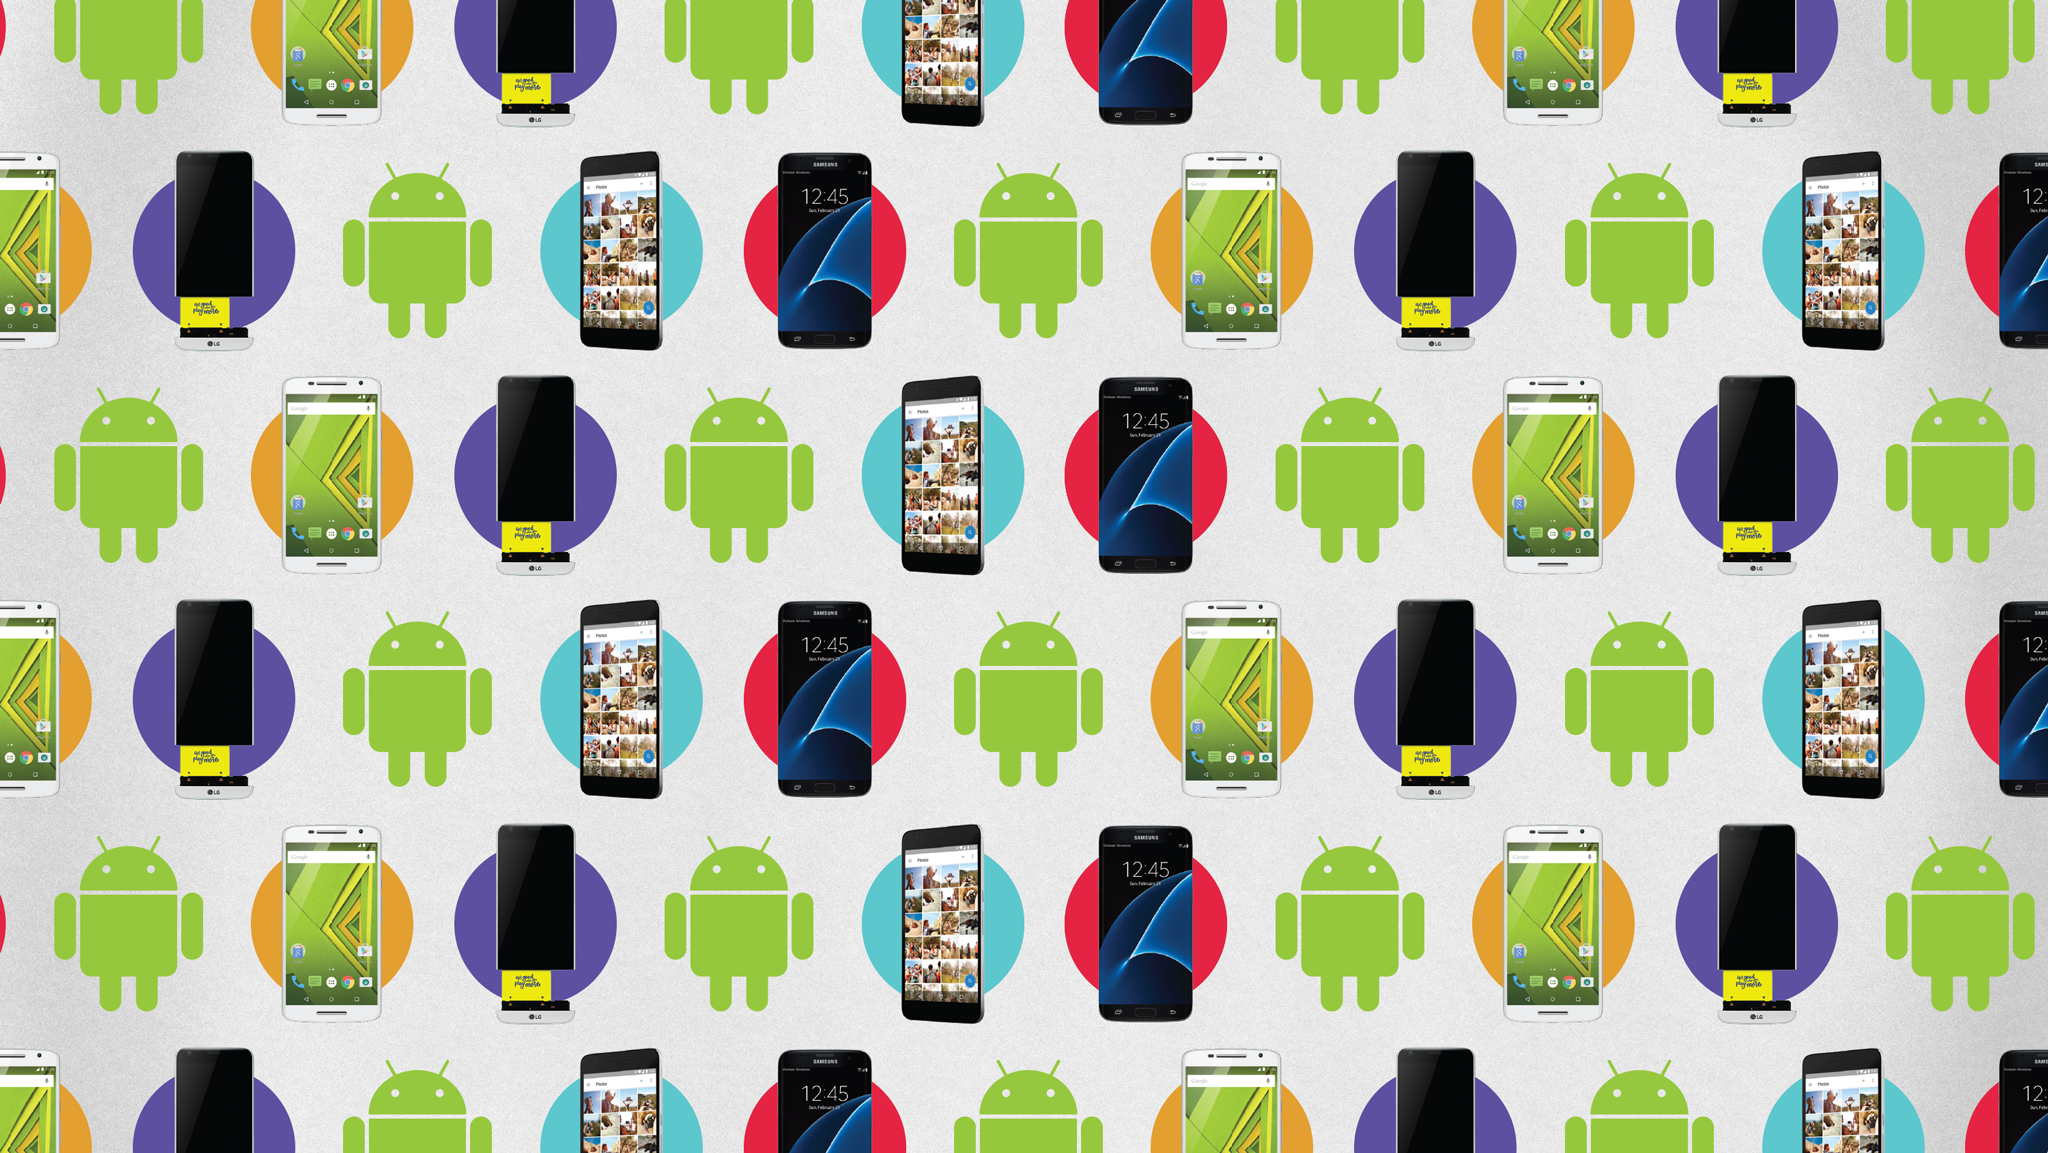 How to Choose Your Next Android Phone: 2016 Edition